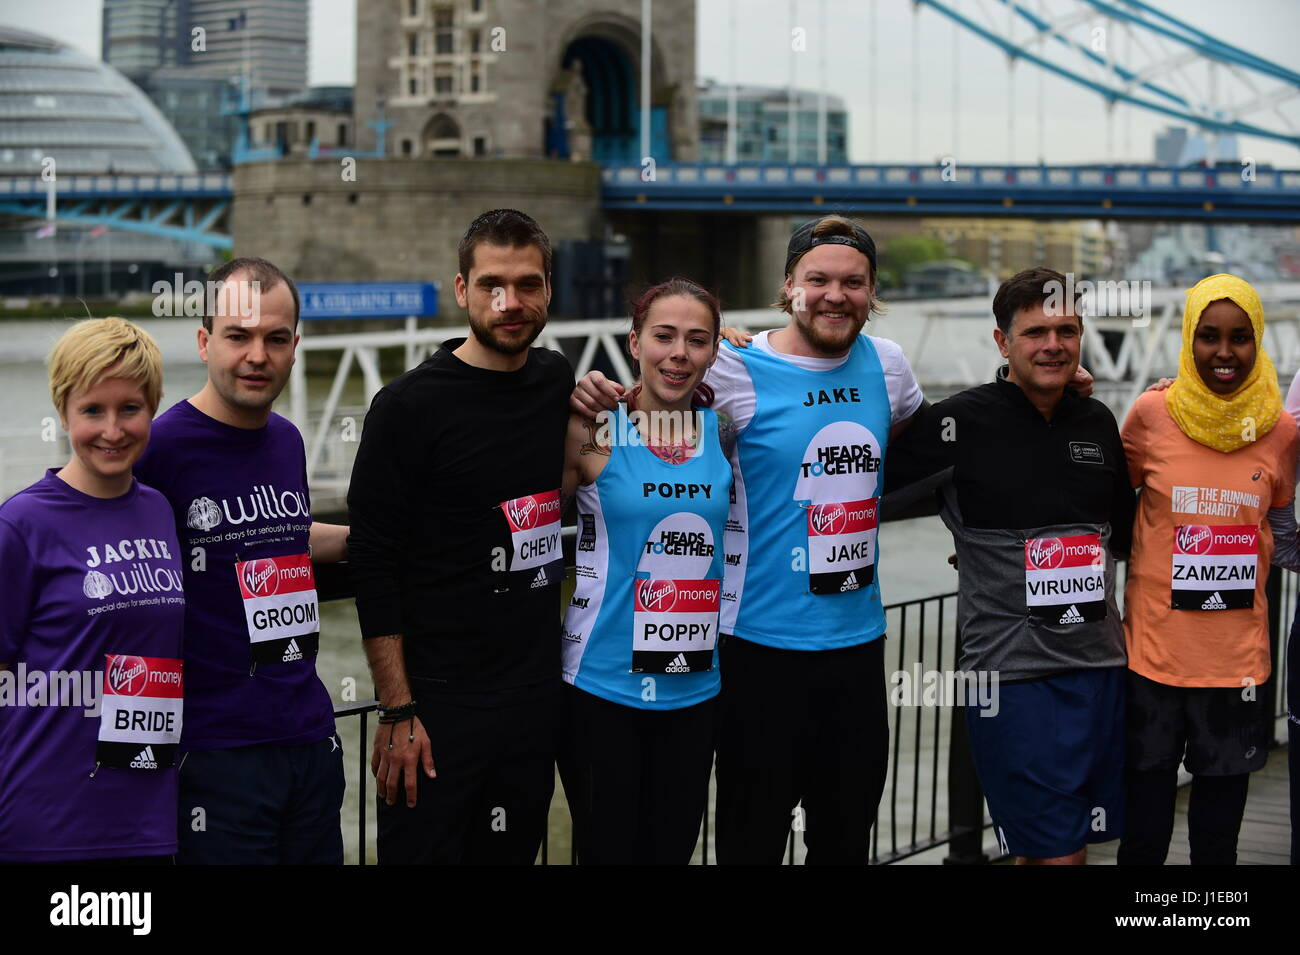 Tower Hotel, London UK. 21st April 2017. Special runners photocall outside Tower Hotel. Credit: Malcolm Park/Alamy Stock Photo